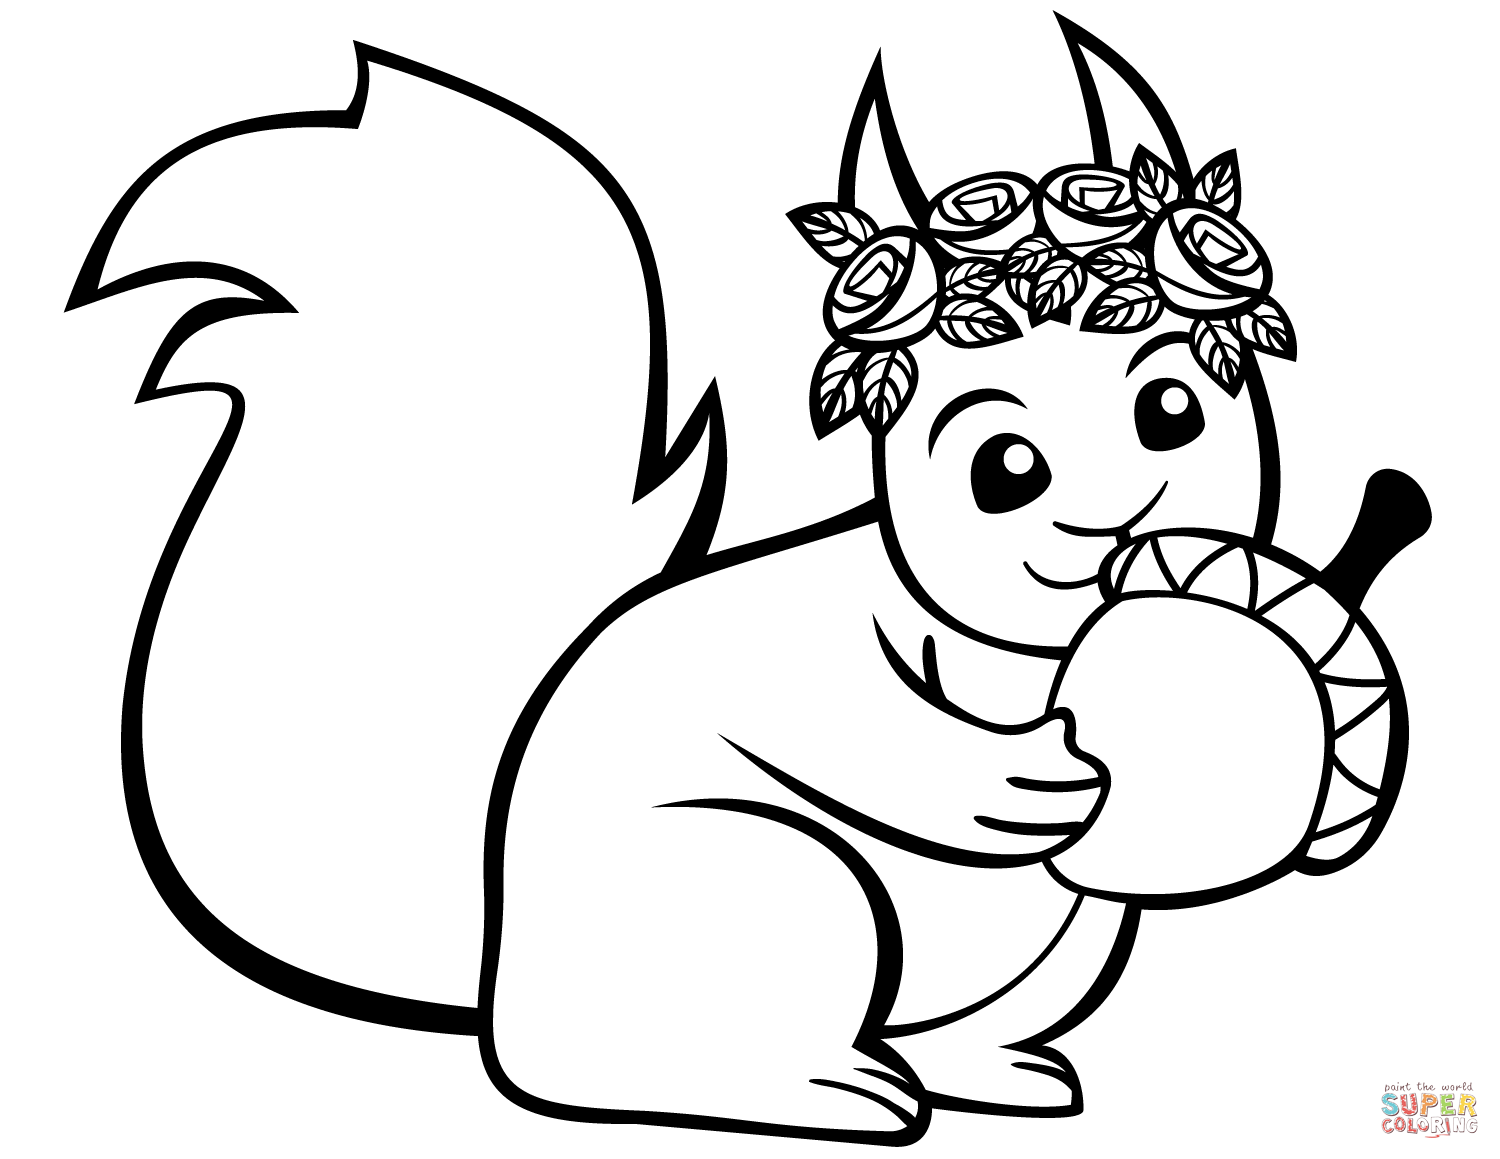 Mammals Squirrels Chipmunks Coloring Pages Printable